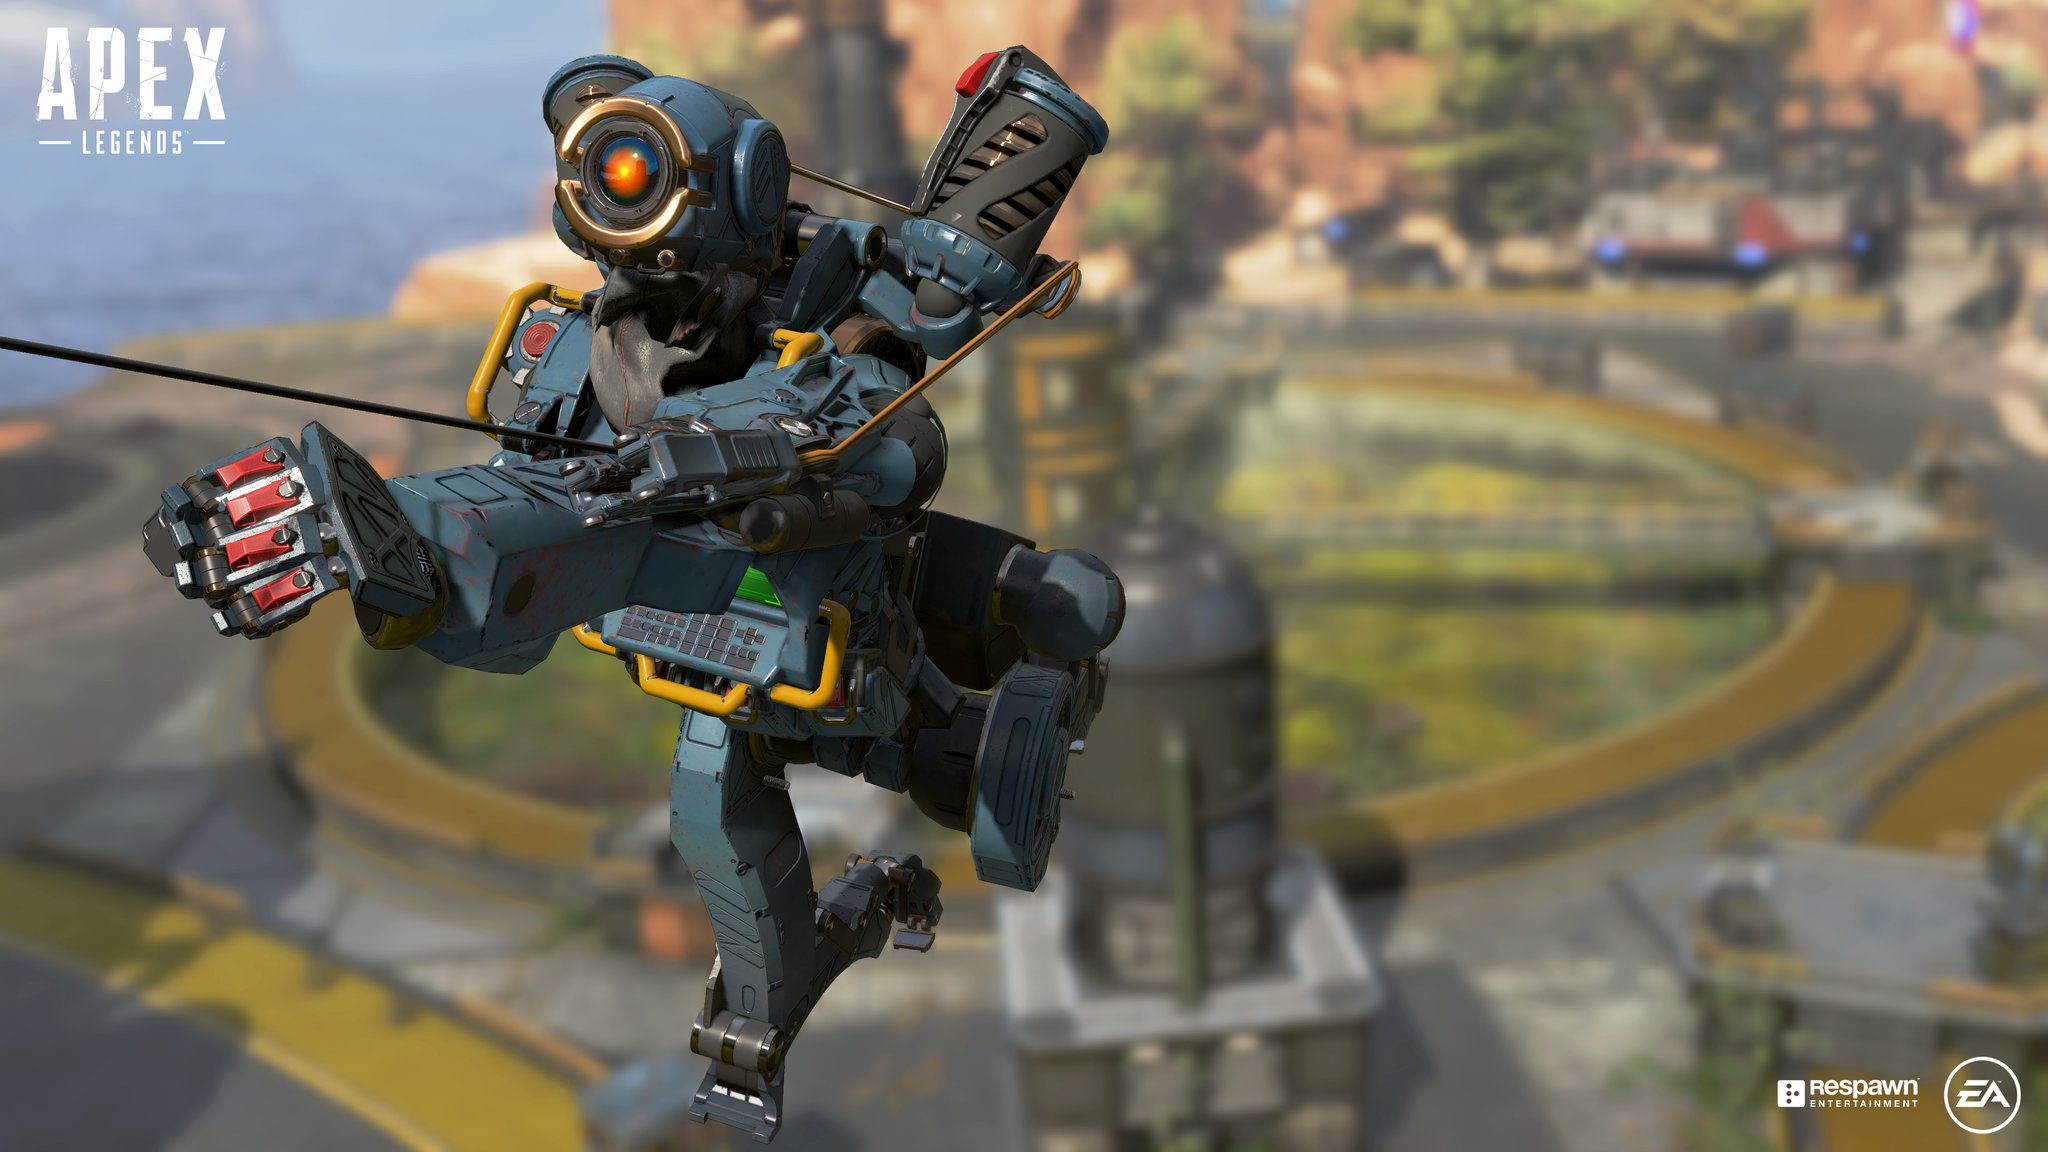 Apex Legends Patch 1.1 Progression Problems Fixed